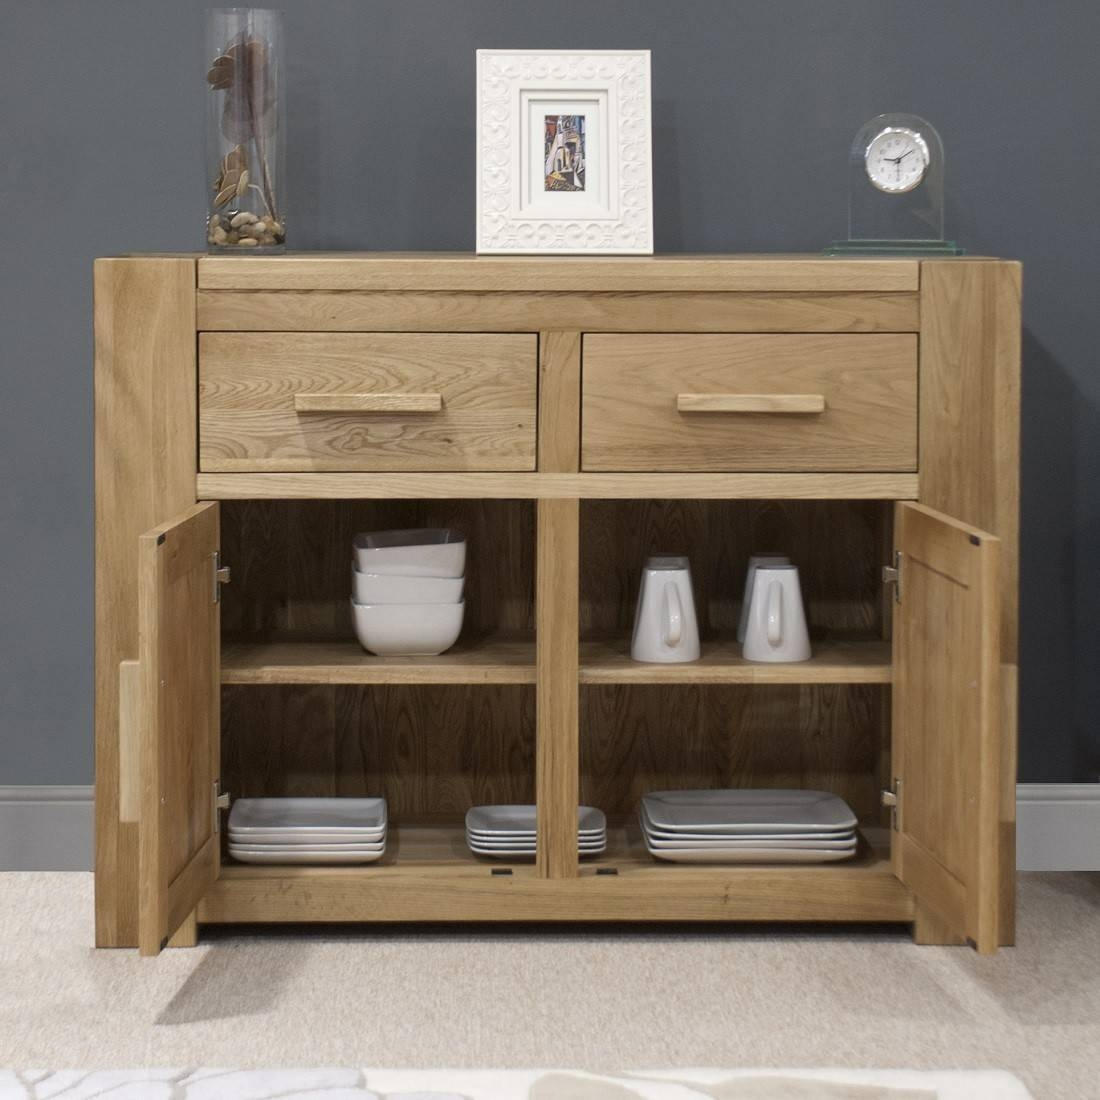 Trend Solid Oak Small 2 Door Sideboard | Oak Furniture Uk with regard to 2 Door Sideboards (Image 13 of 15)